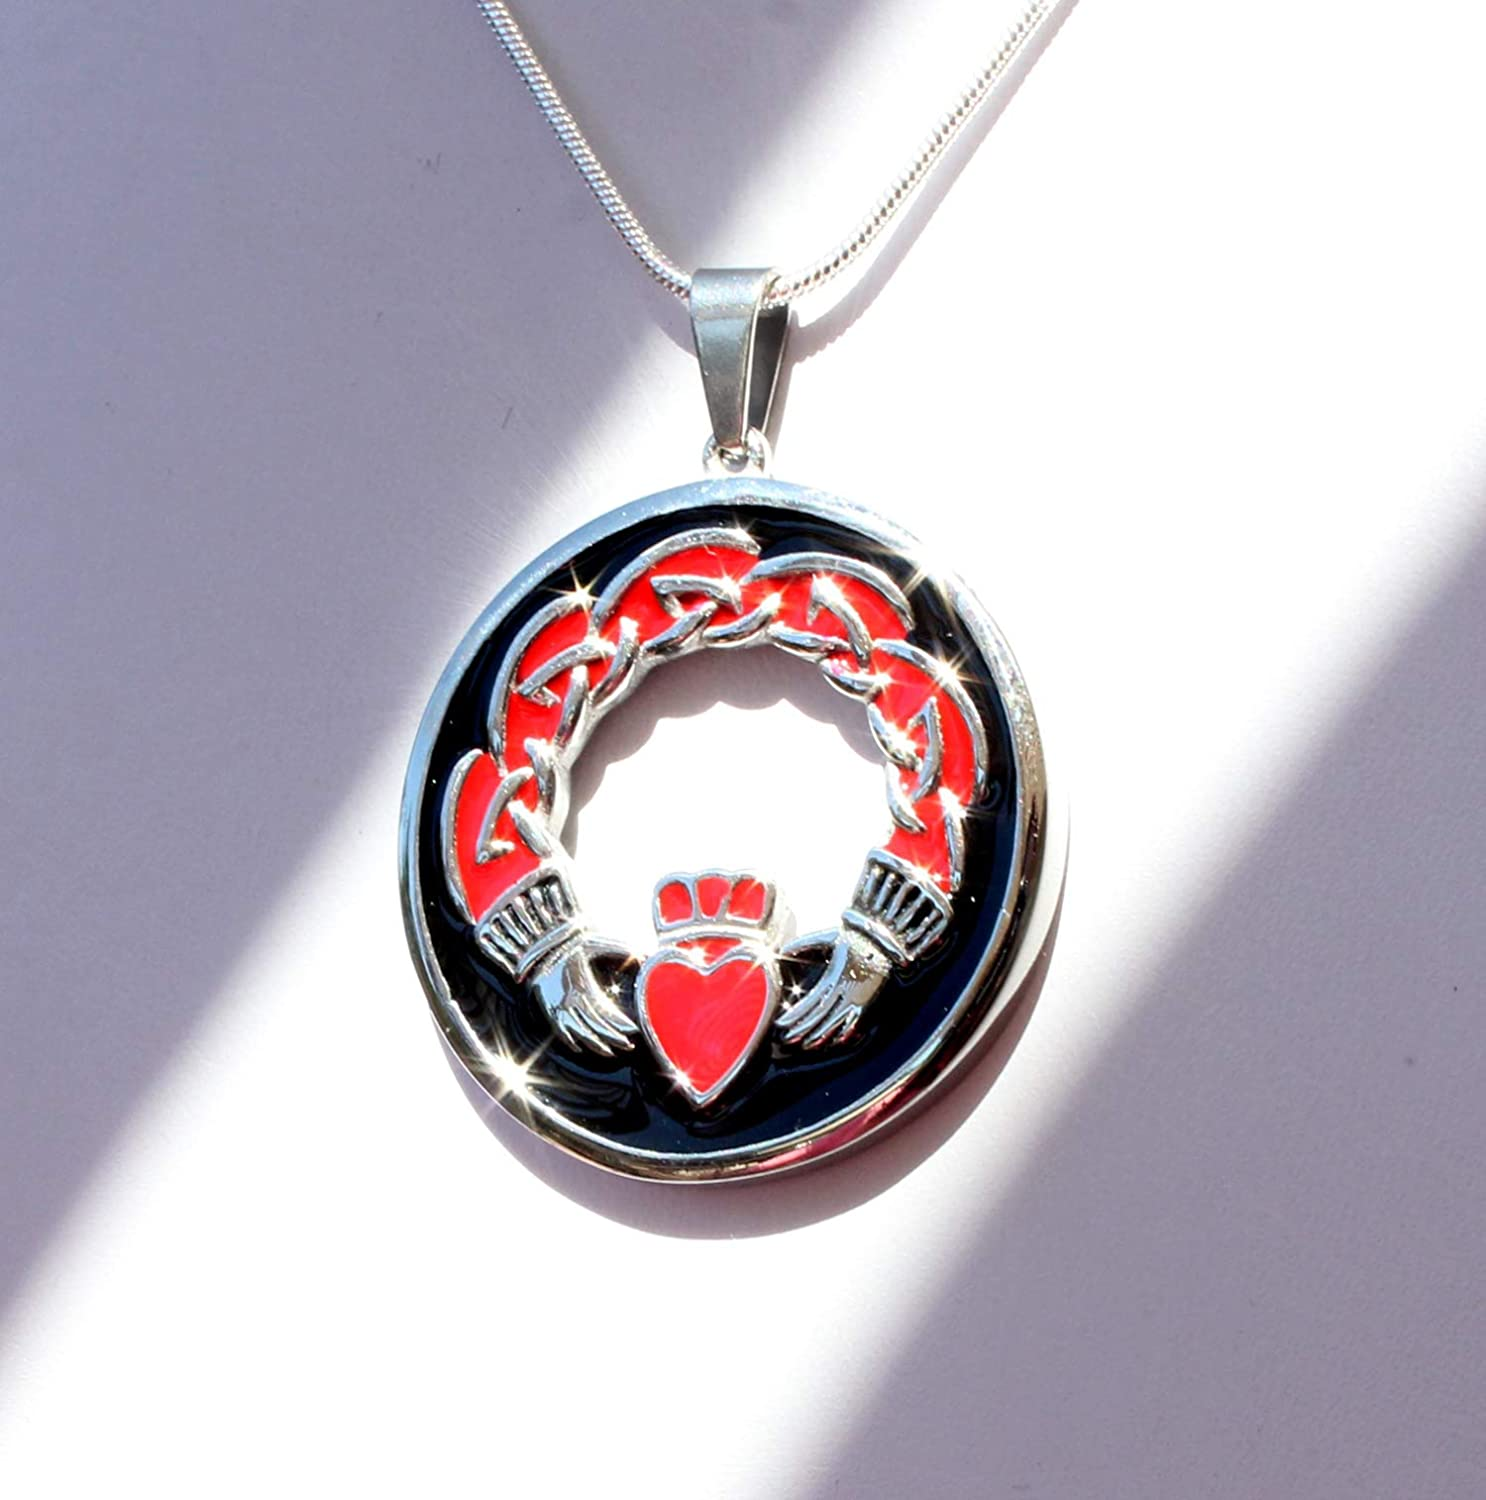 Beautiful Silver Jewelry Celtic Claddagh Heart Stainless Steel Red and Black Pendant 20 Inch Necklace in Gift Box